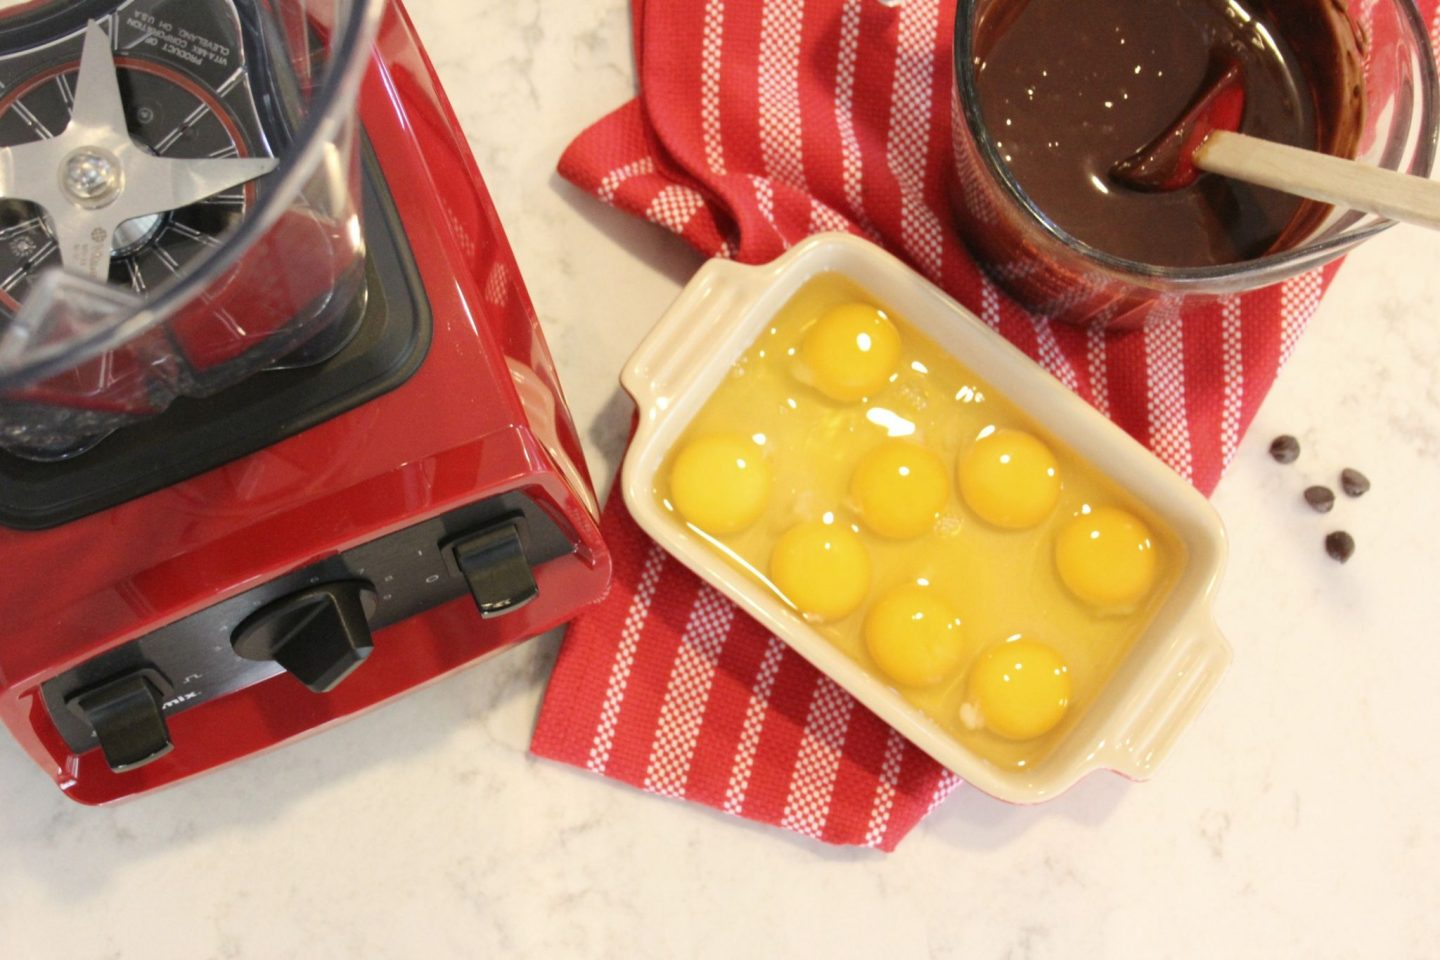 Red Vitamix Explorian E320 with eggs and chocolate on counter